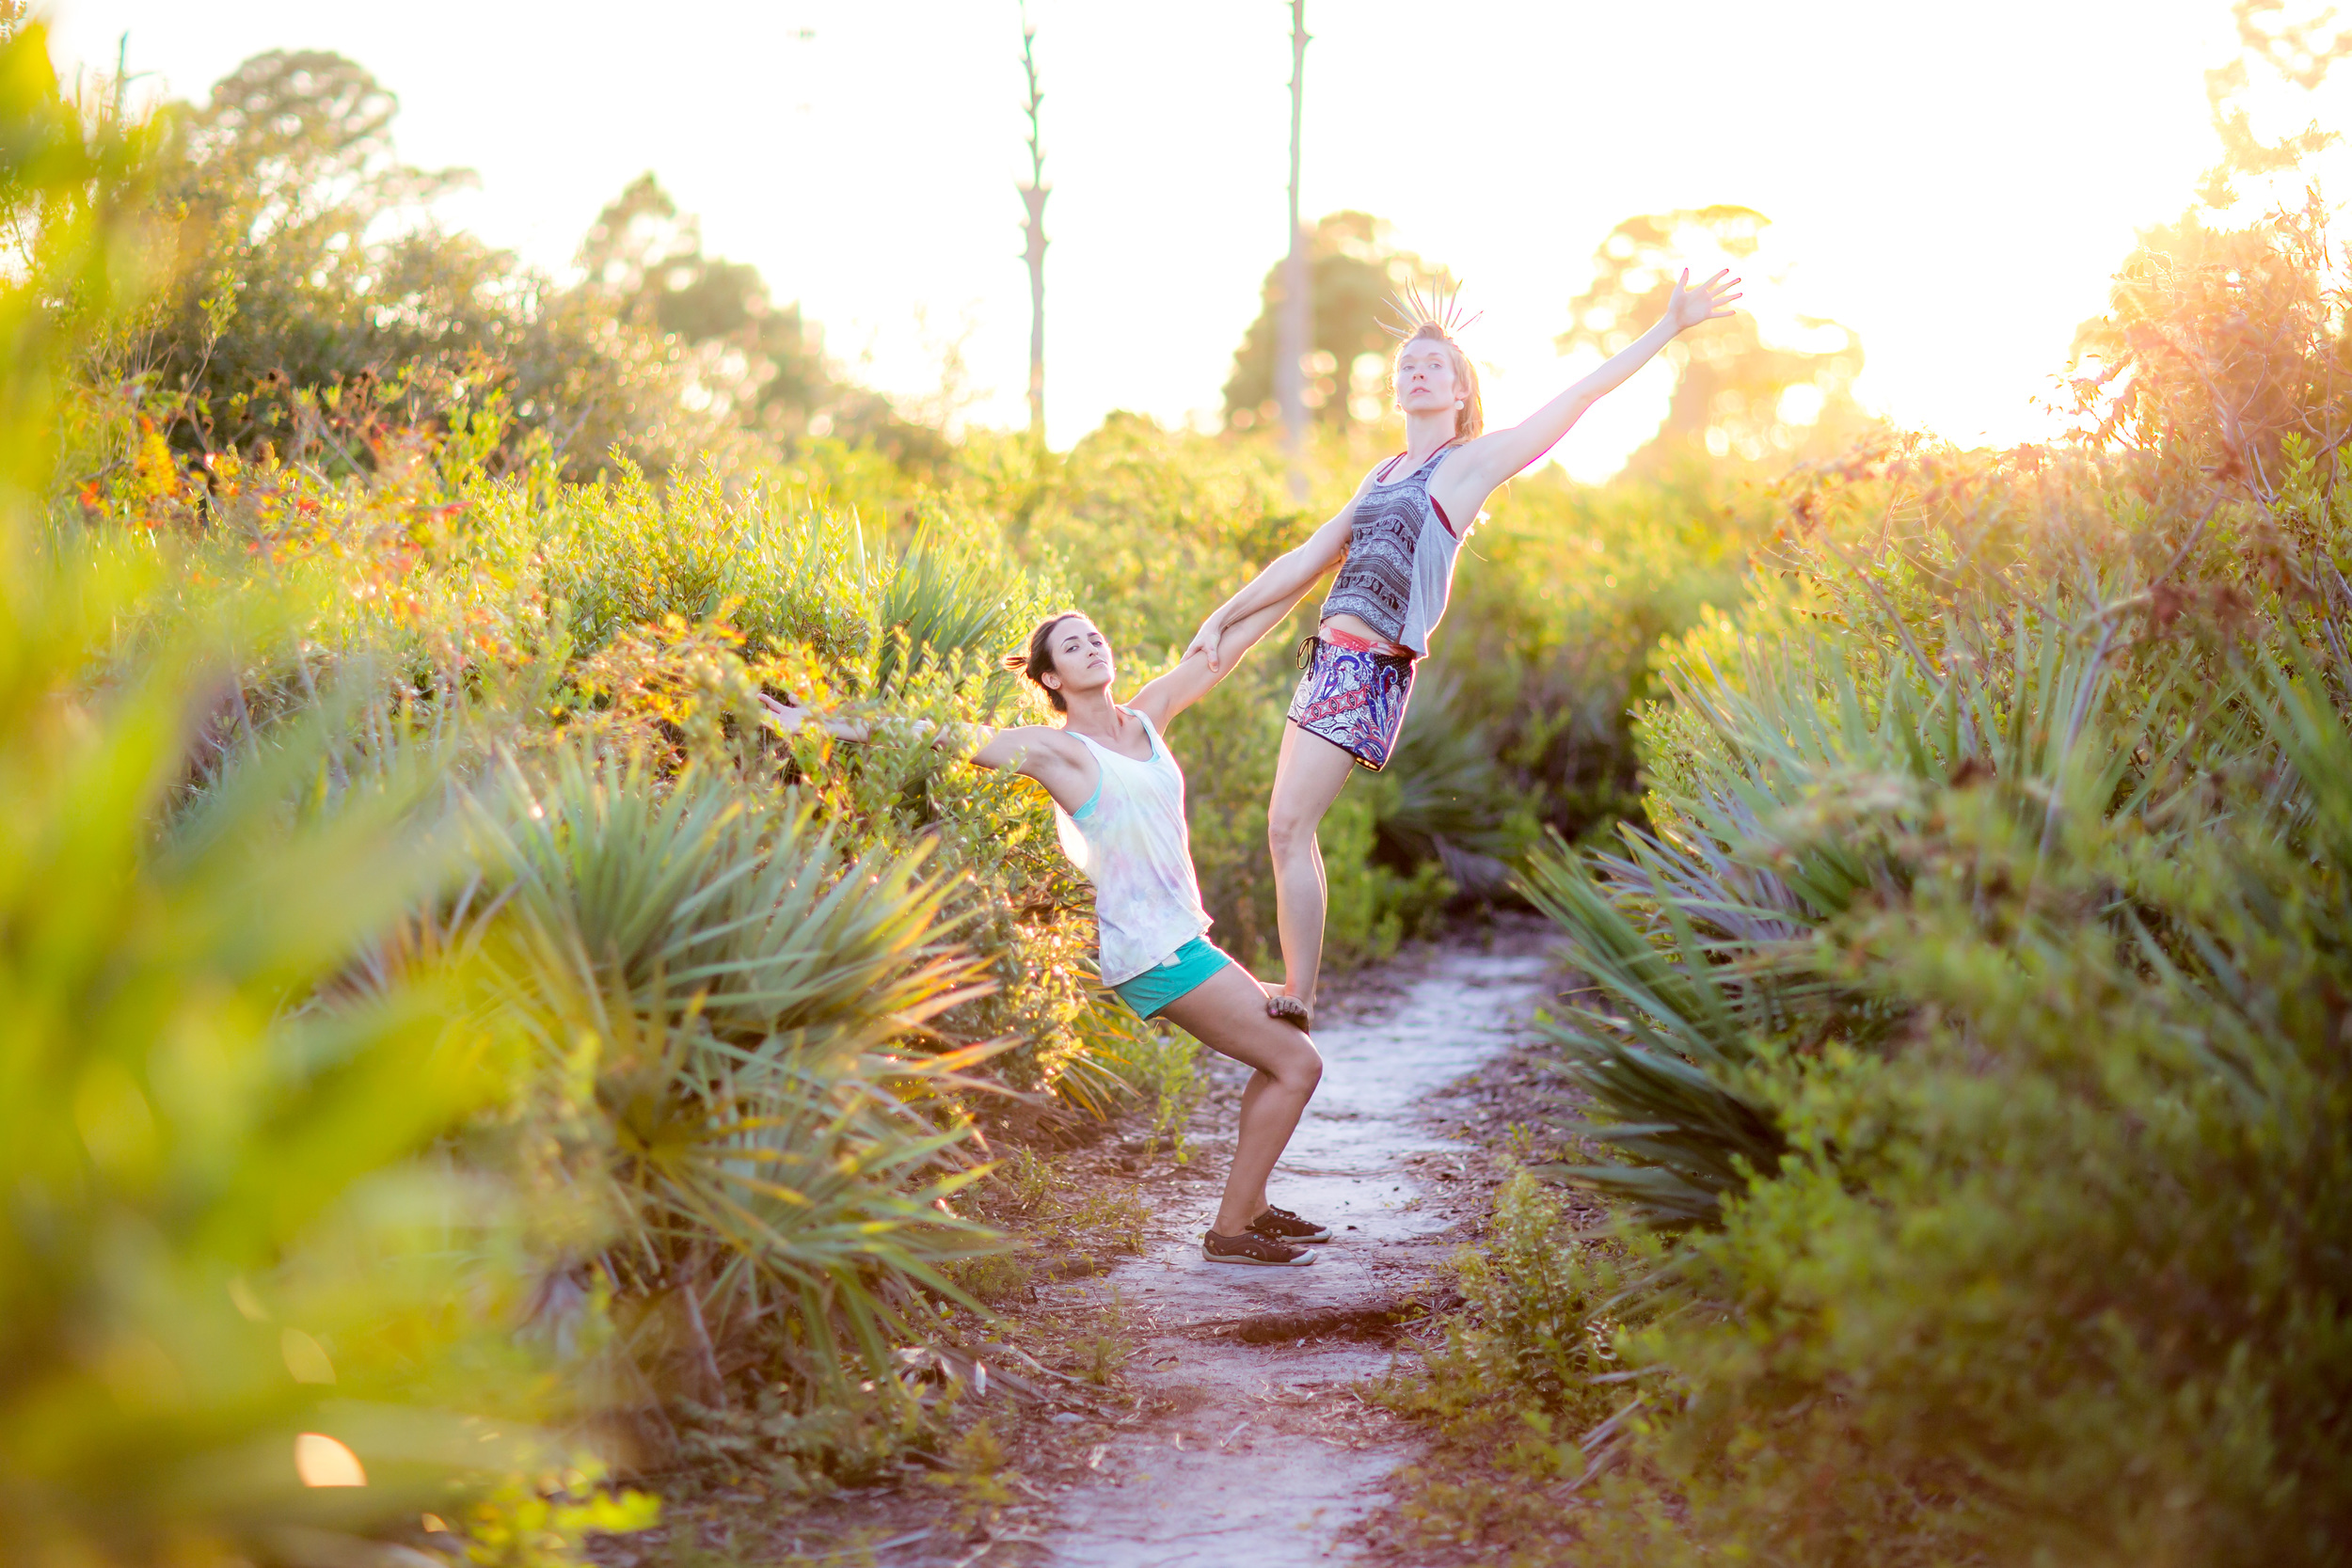 24 Oct 15Child of the Wild Sheebani Flashtats Acroyoga Yoga- Cruickshank Wildlife Scrub Forest Trail Hiking - Christy Lindsey Oct 2015 41.jpg